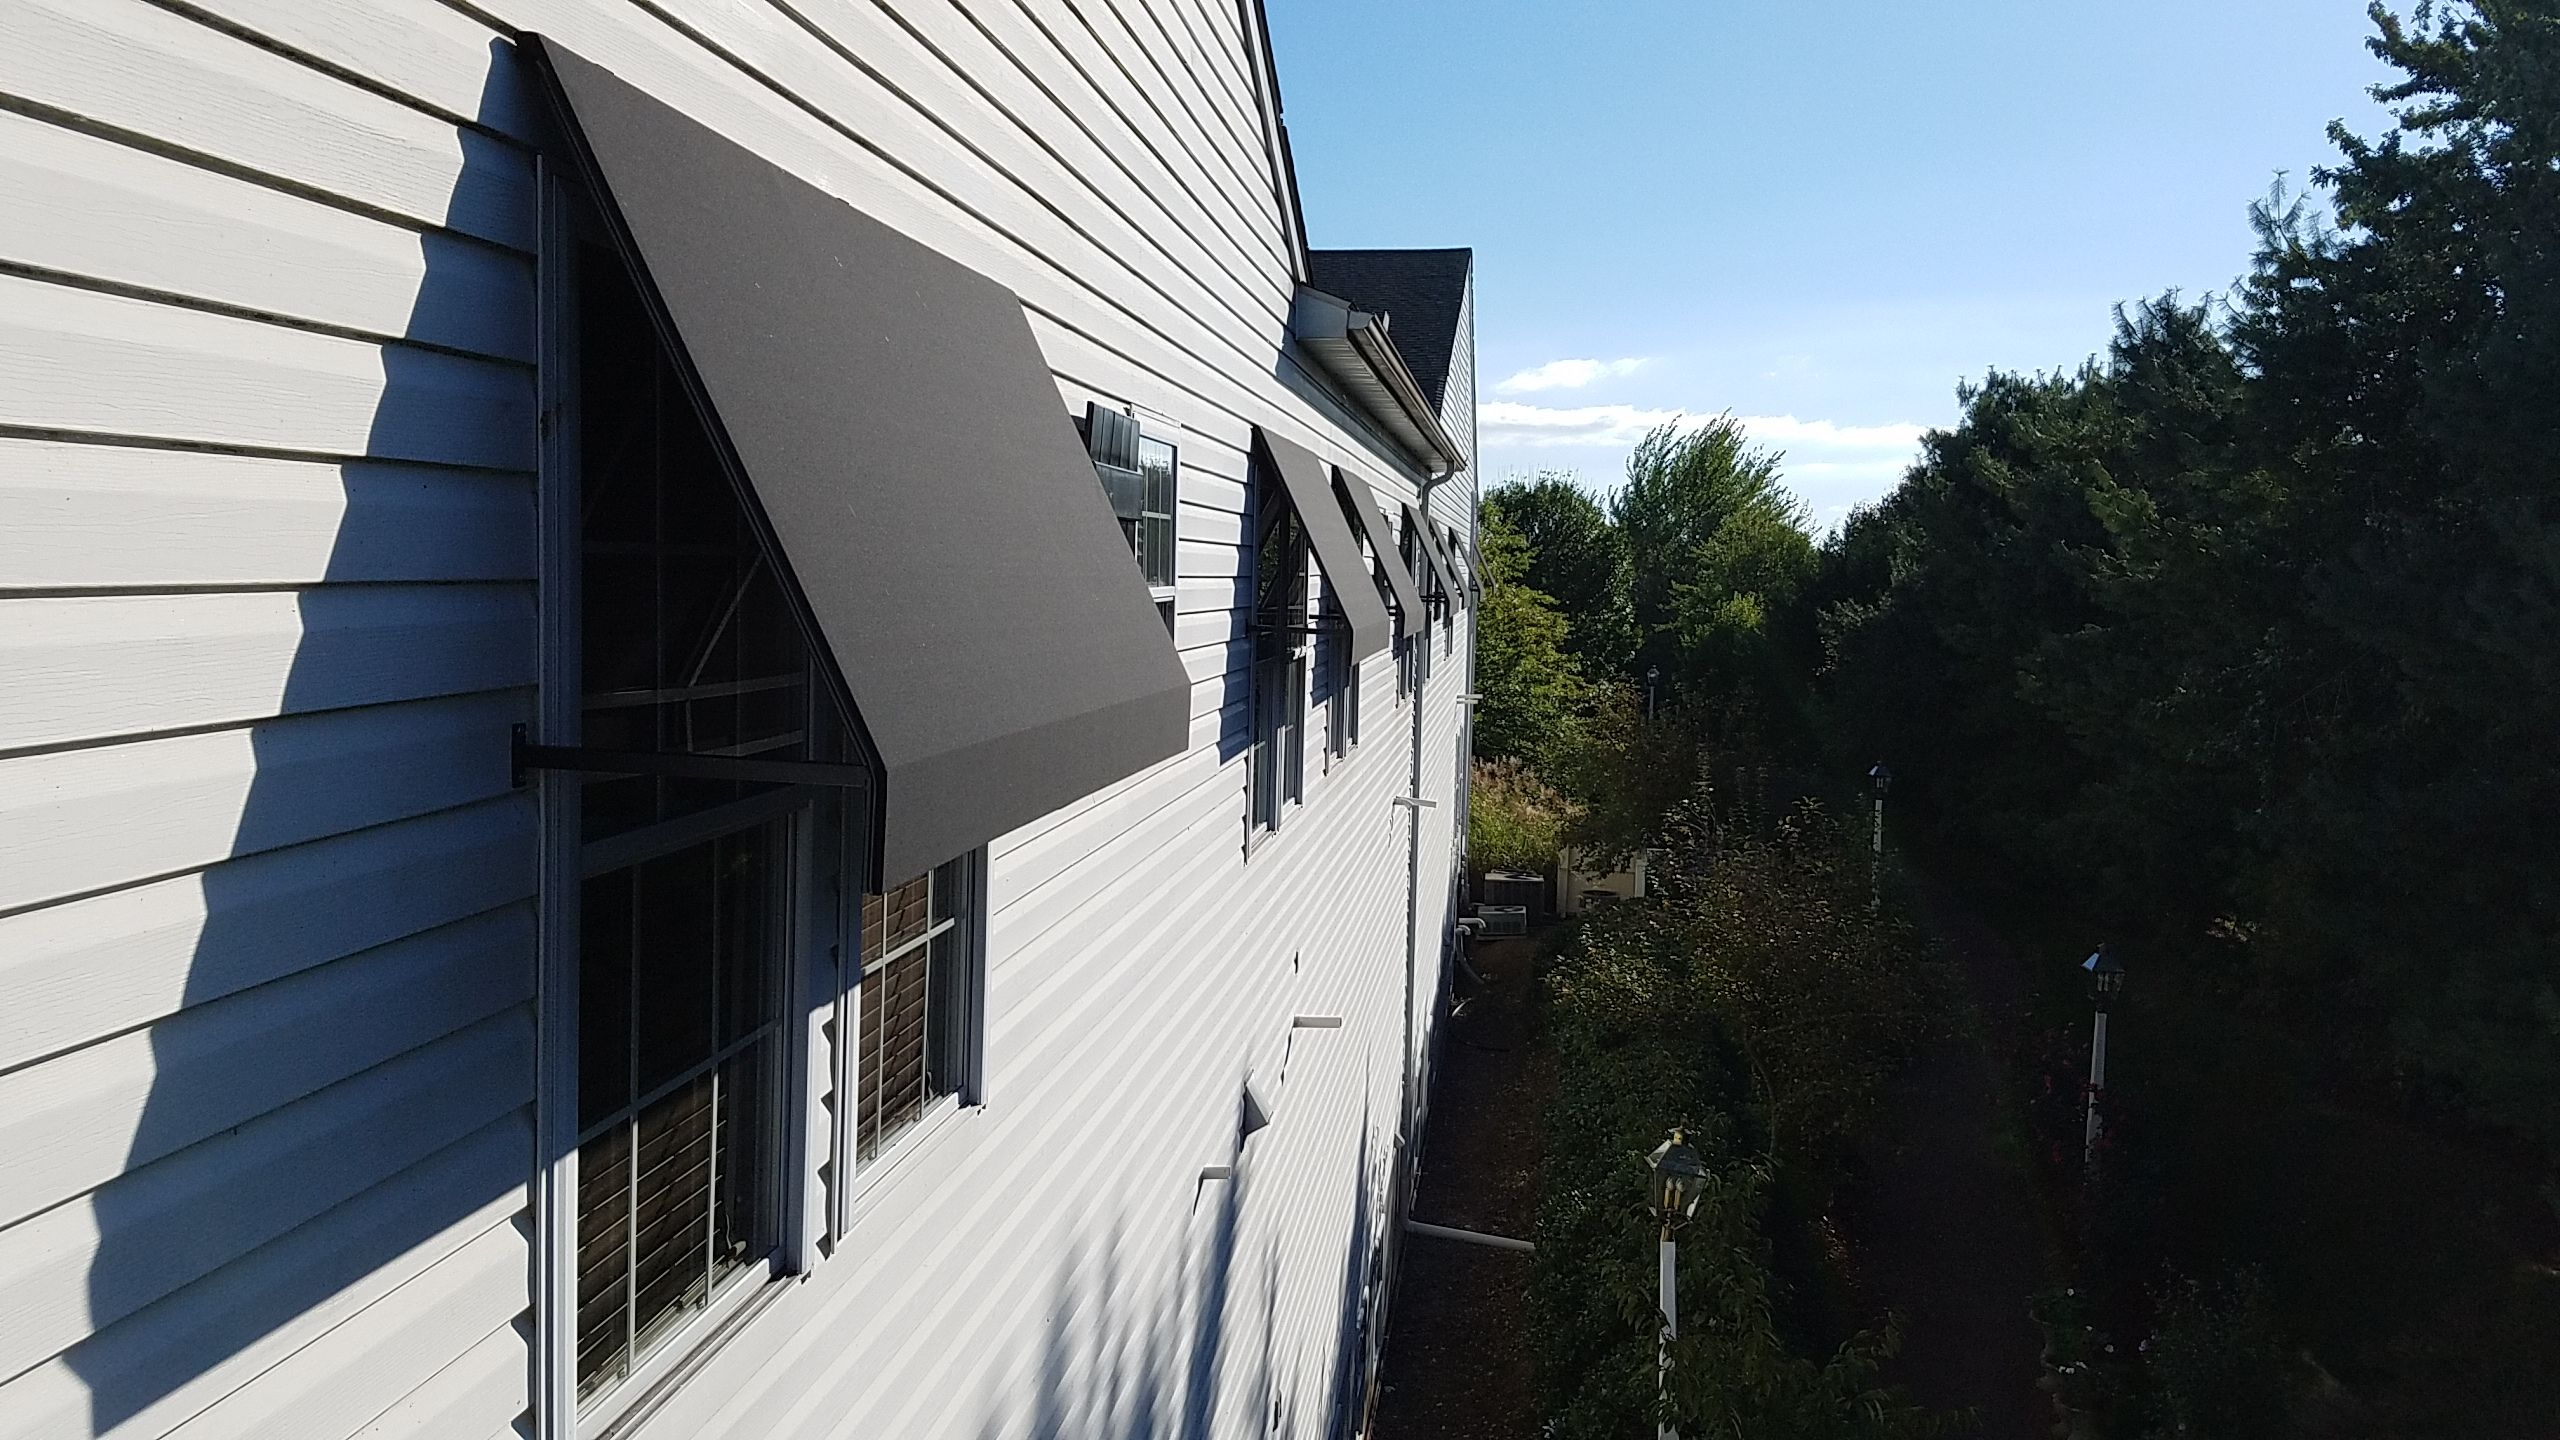 Lower In House Temperatures And Save On Air Conditioning Costs By Installing Window Awnings Open Wing Design Still B Window Awnings Window Installation Awning